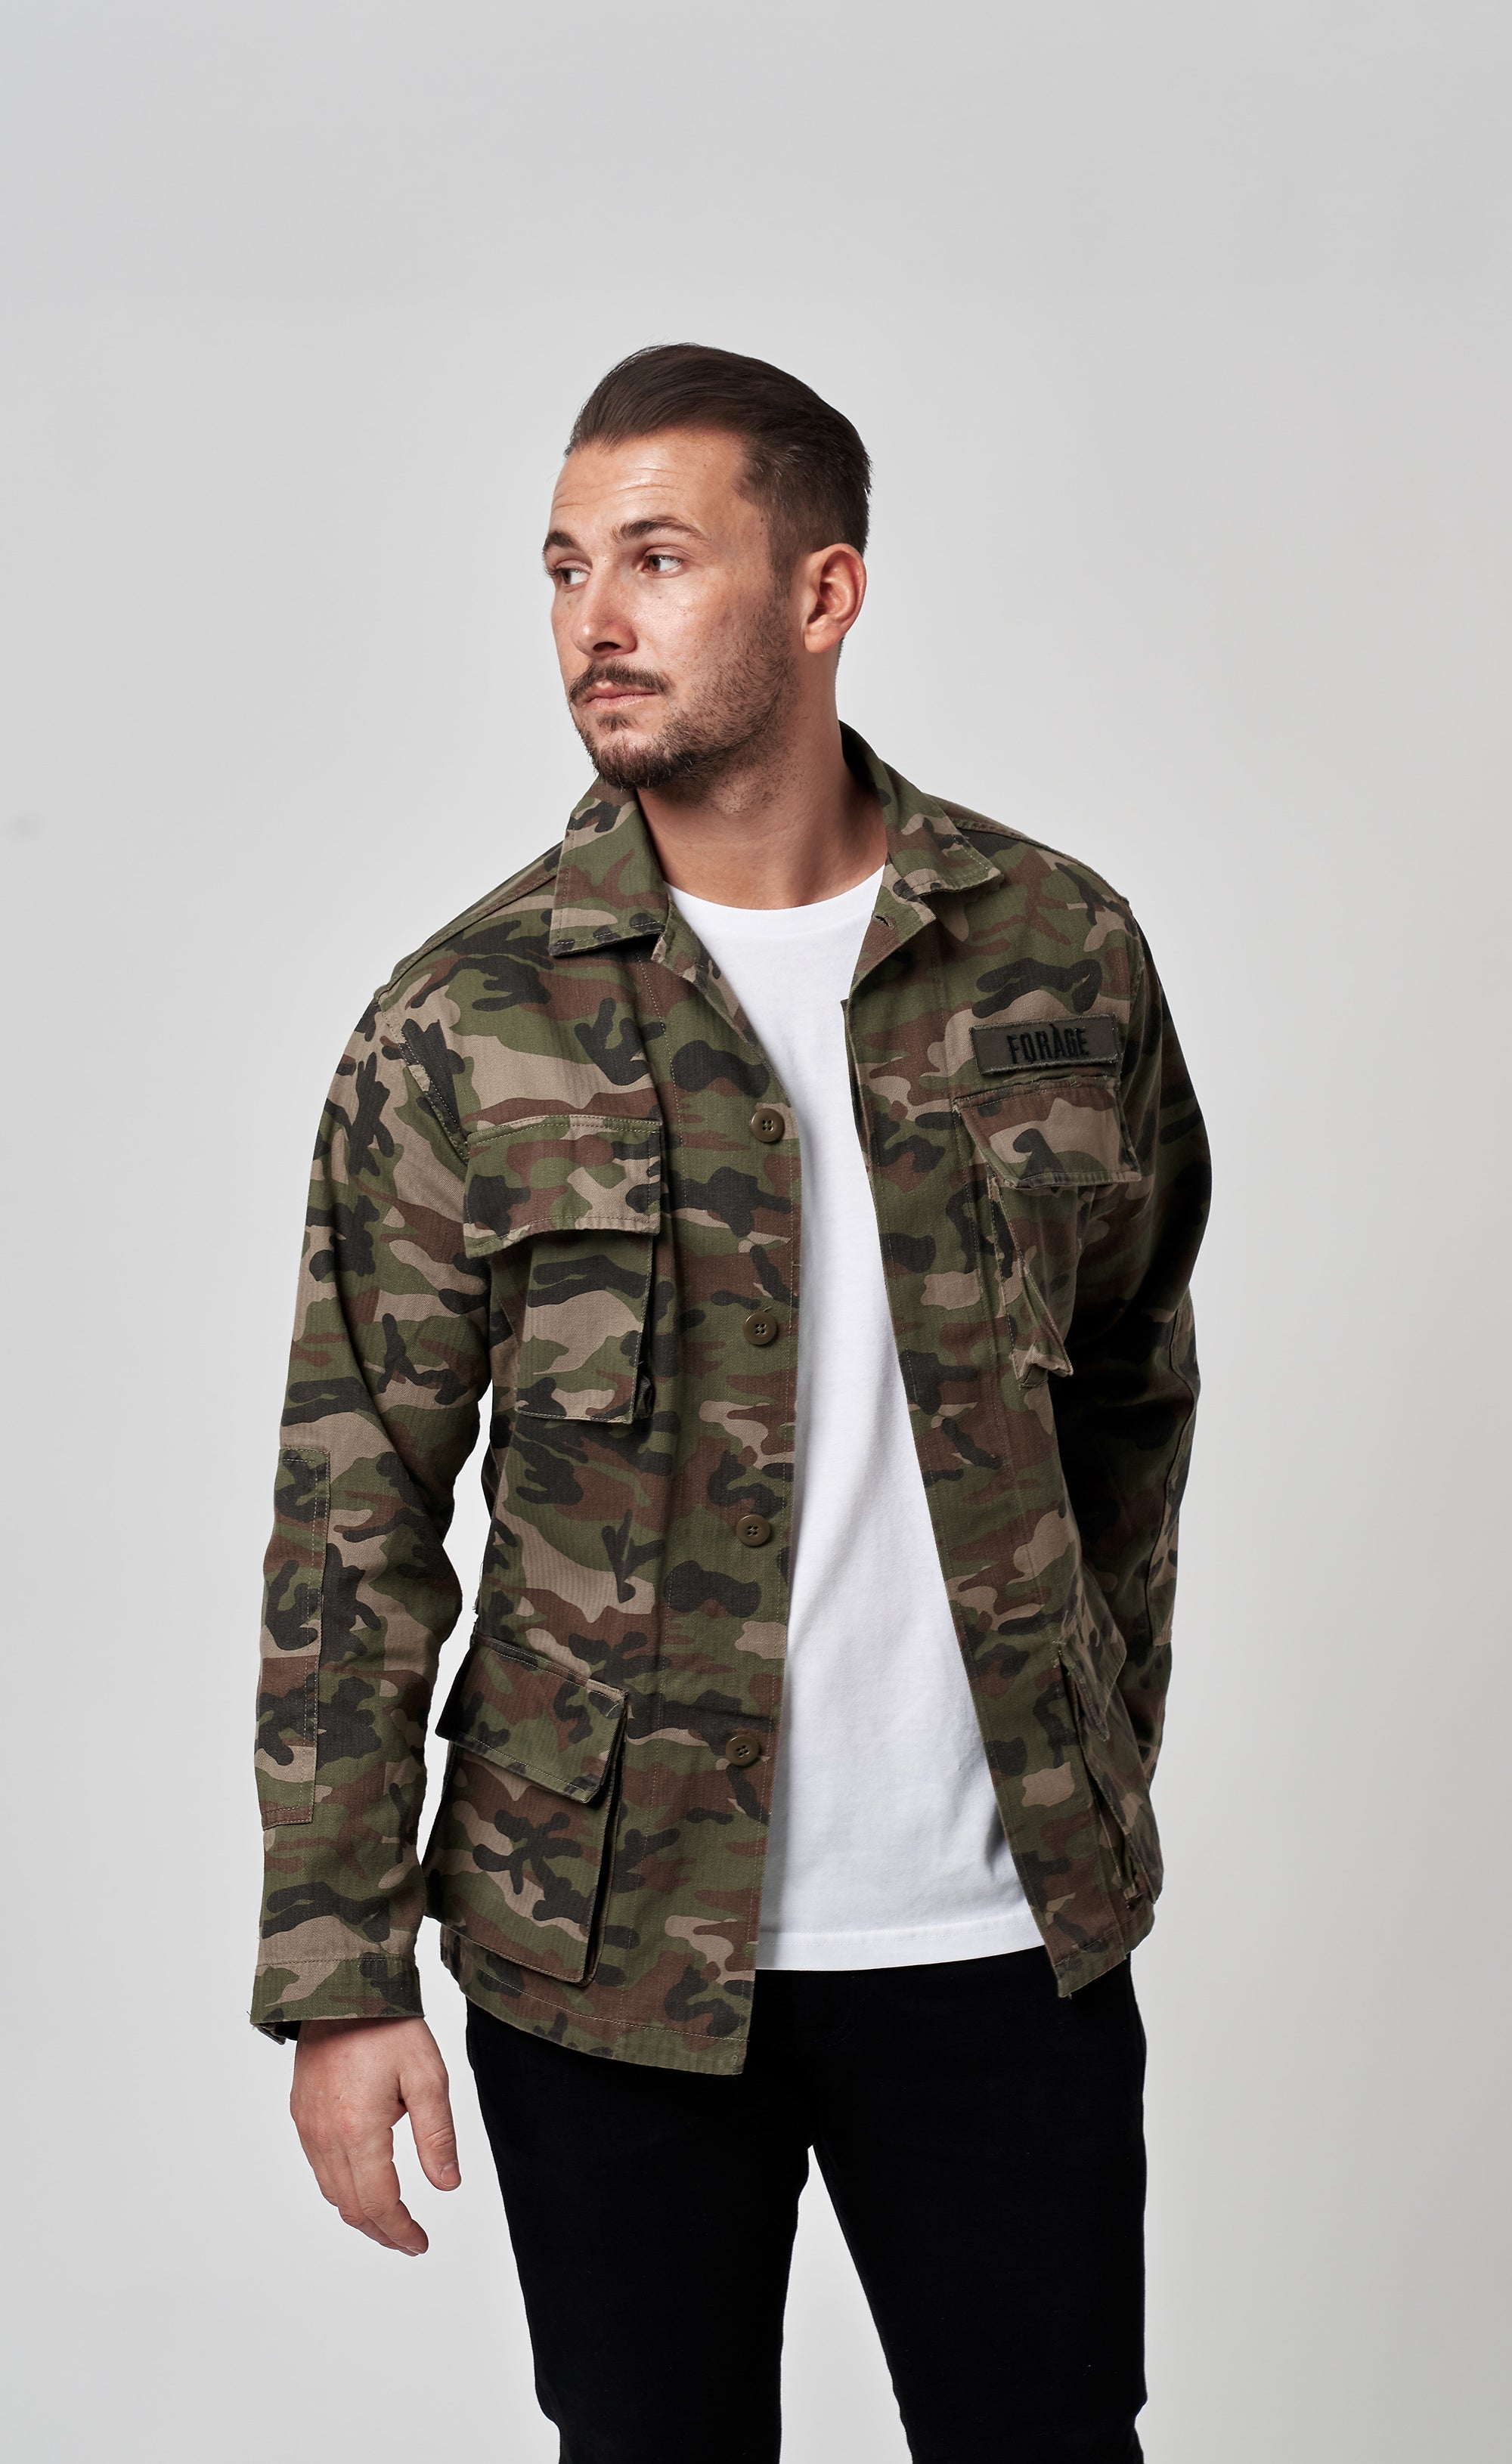 ARMY JACKET - CAMOUFLAGE - Forage-Clothing